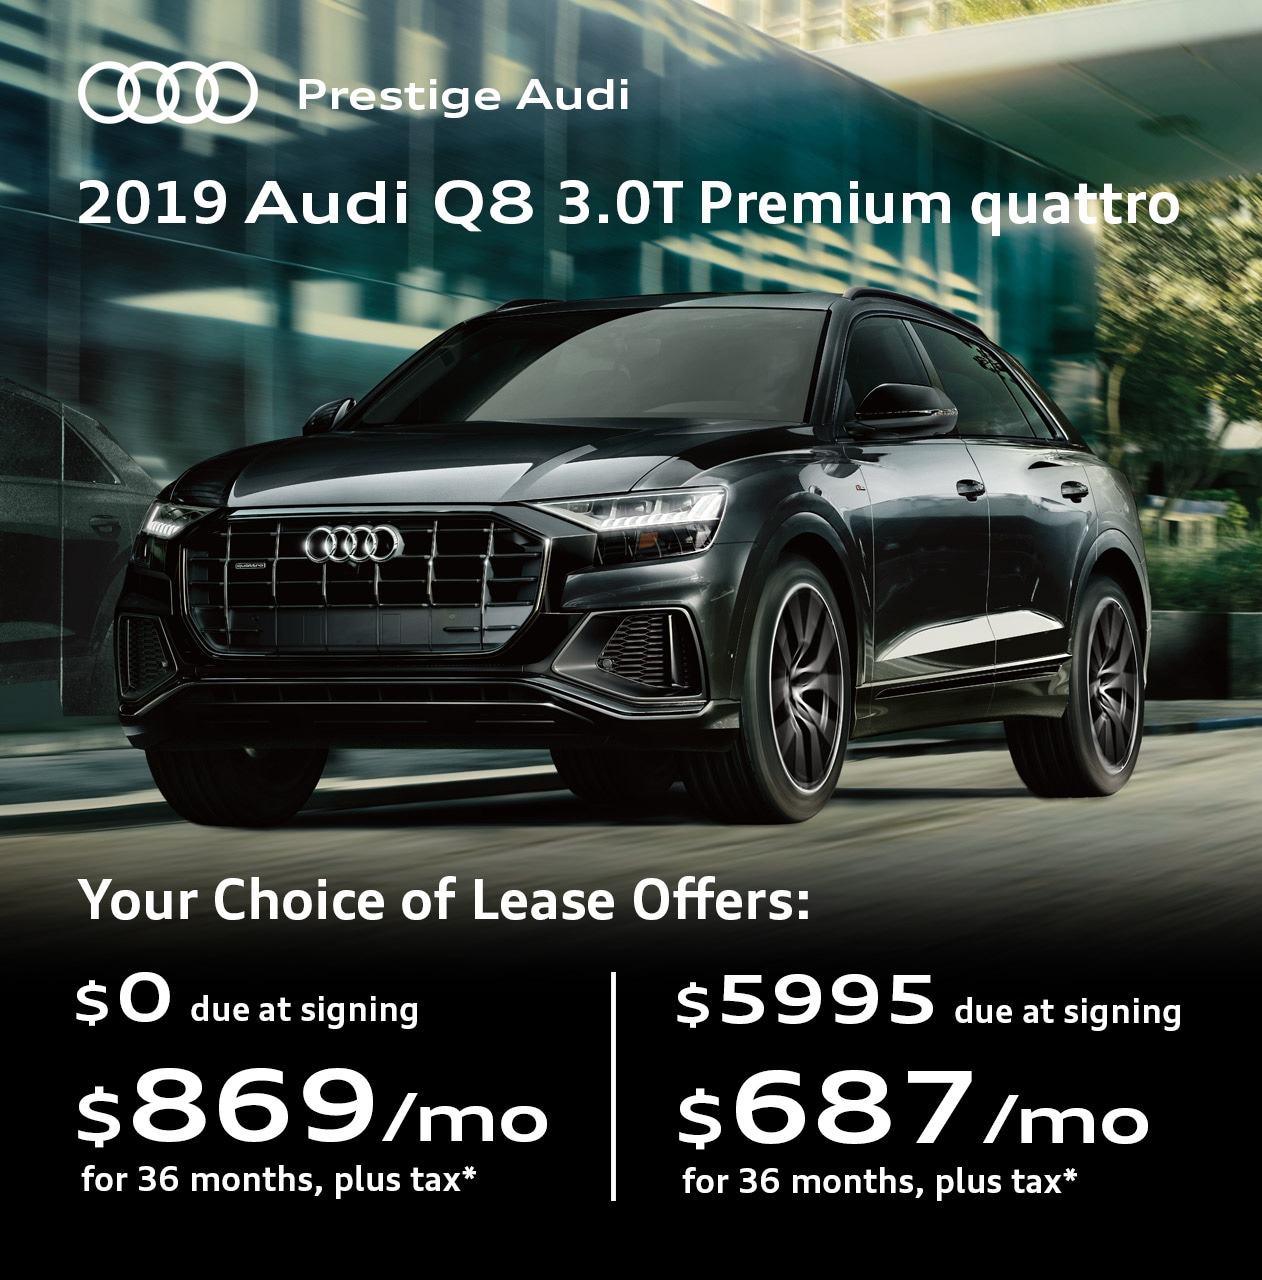 Lease Deals & Offers At Prestige Audi Near